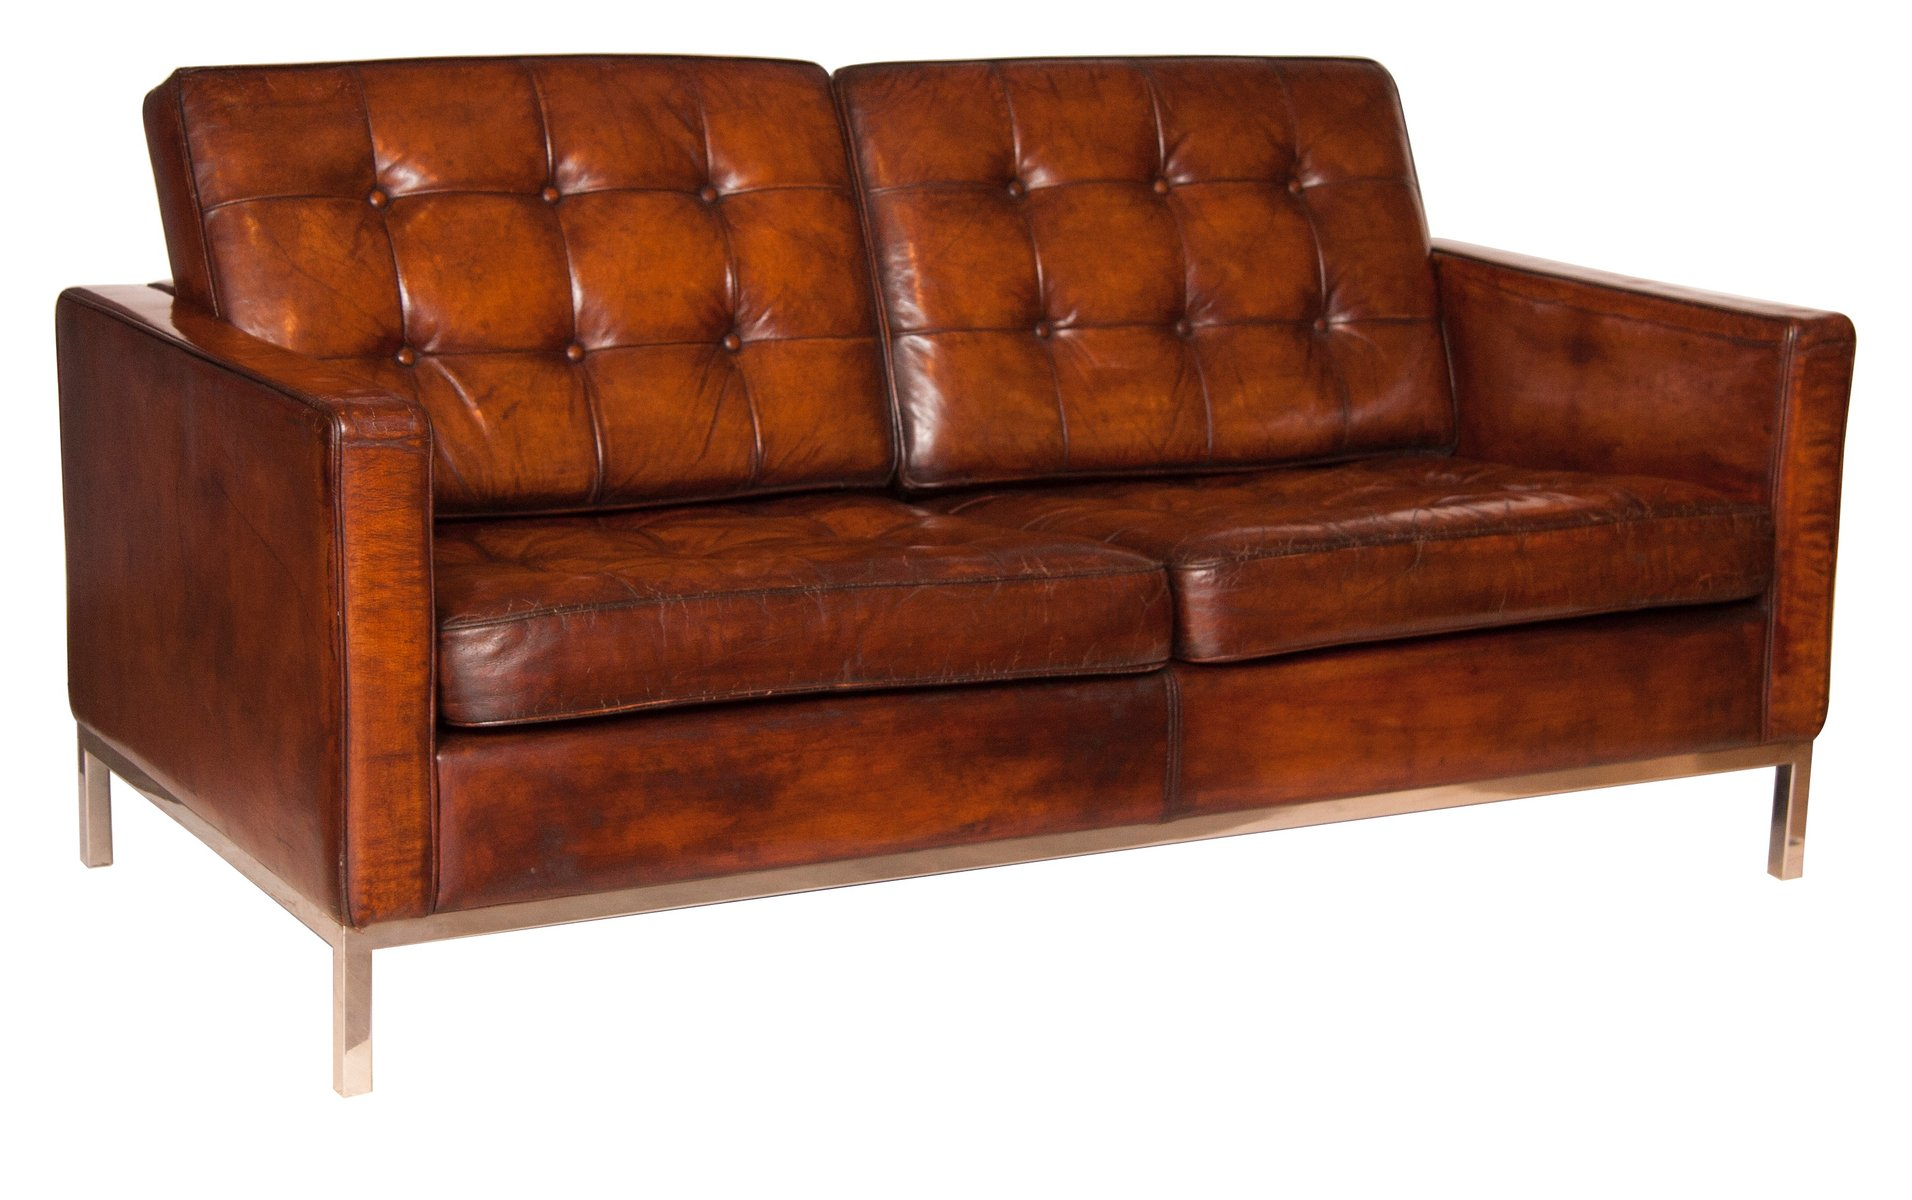 Mid century sofa by florence knoll bassett 1960s for sale at pamono - Florence knoll sofa gebraucht ...